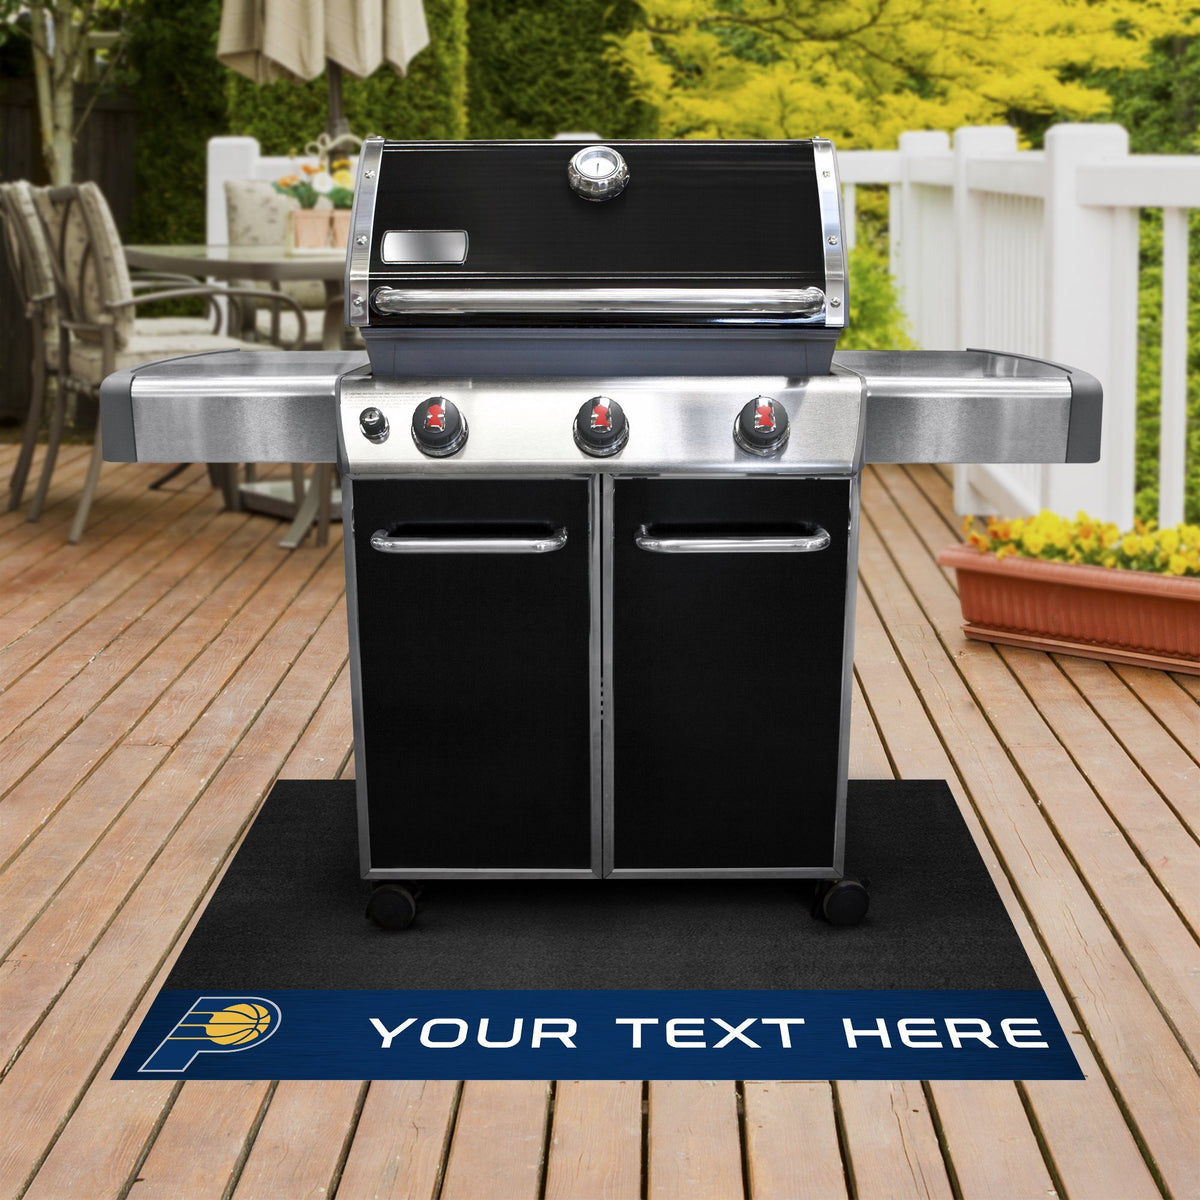 NBA Personalized Grill Mat Personalized Grill Mat Fan Mats Indiana Pacers